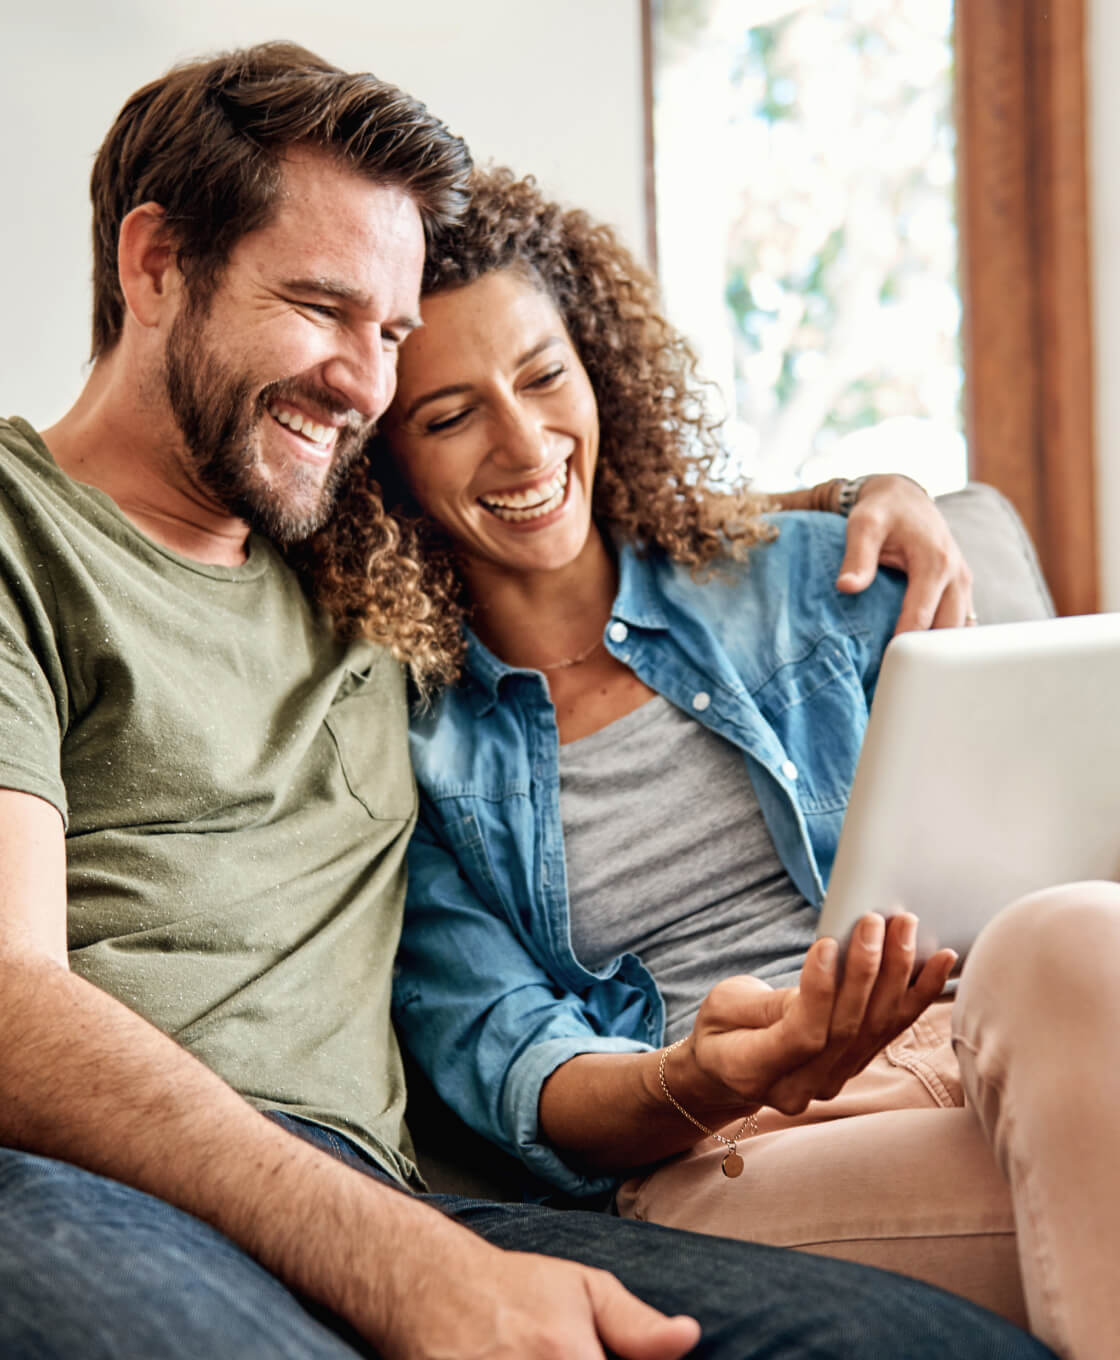 Couple in Home on Computer